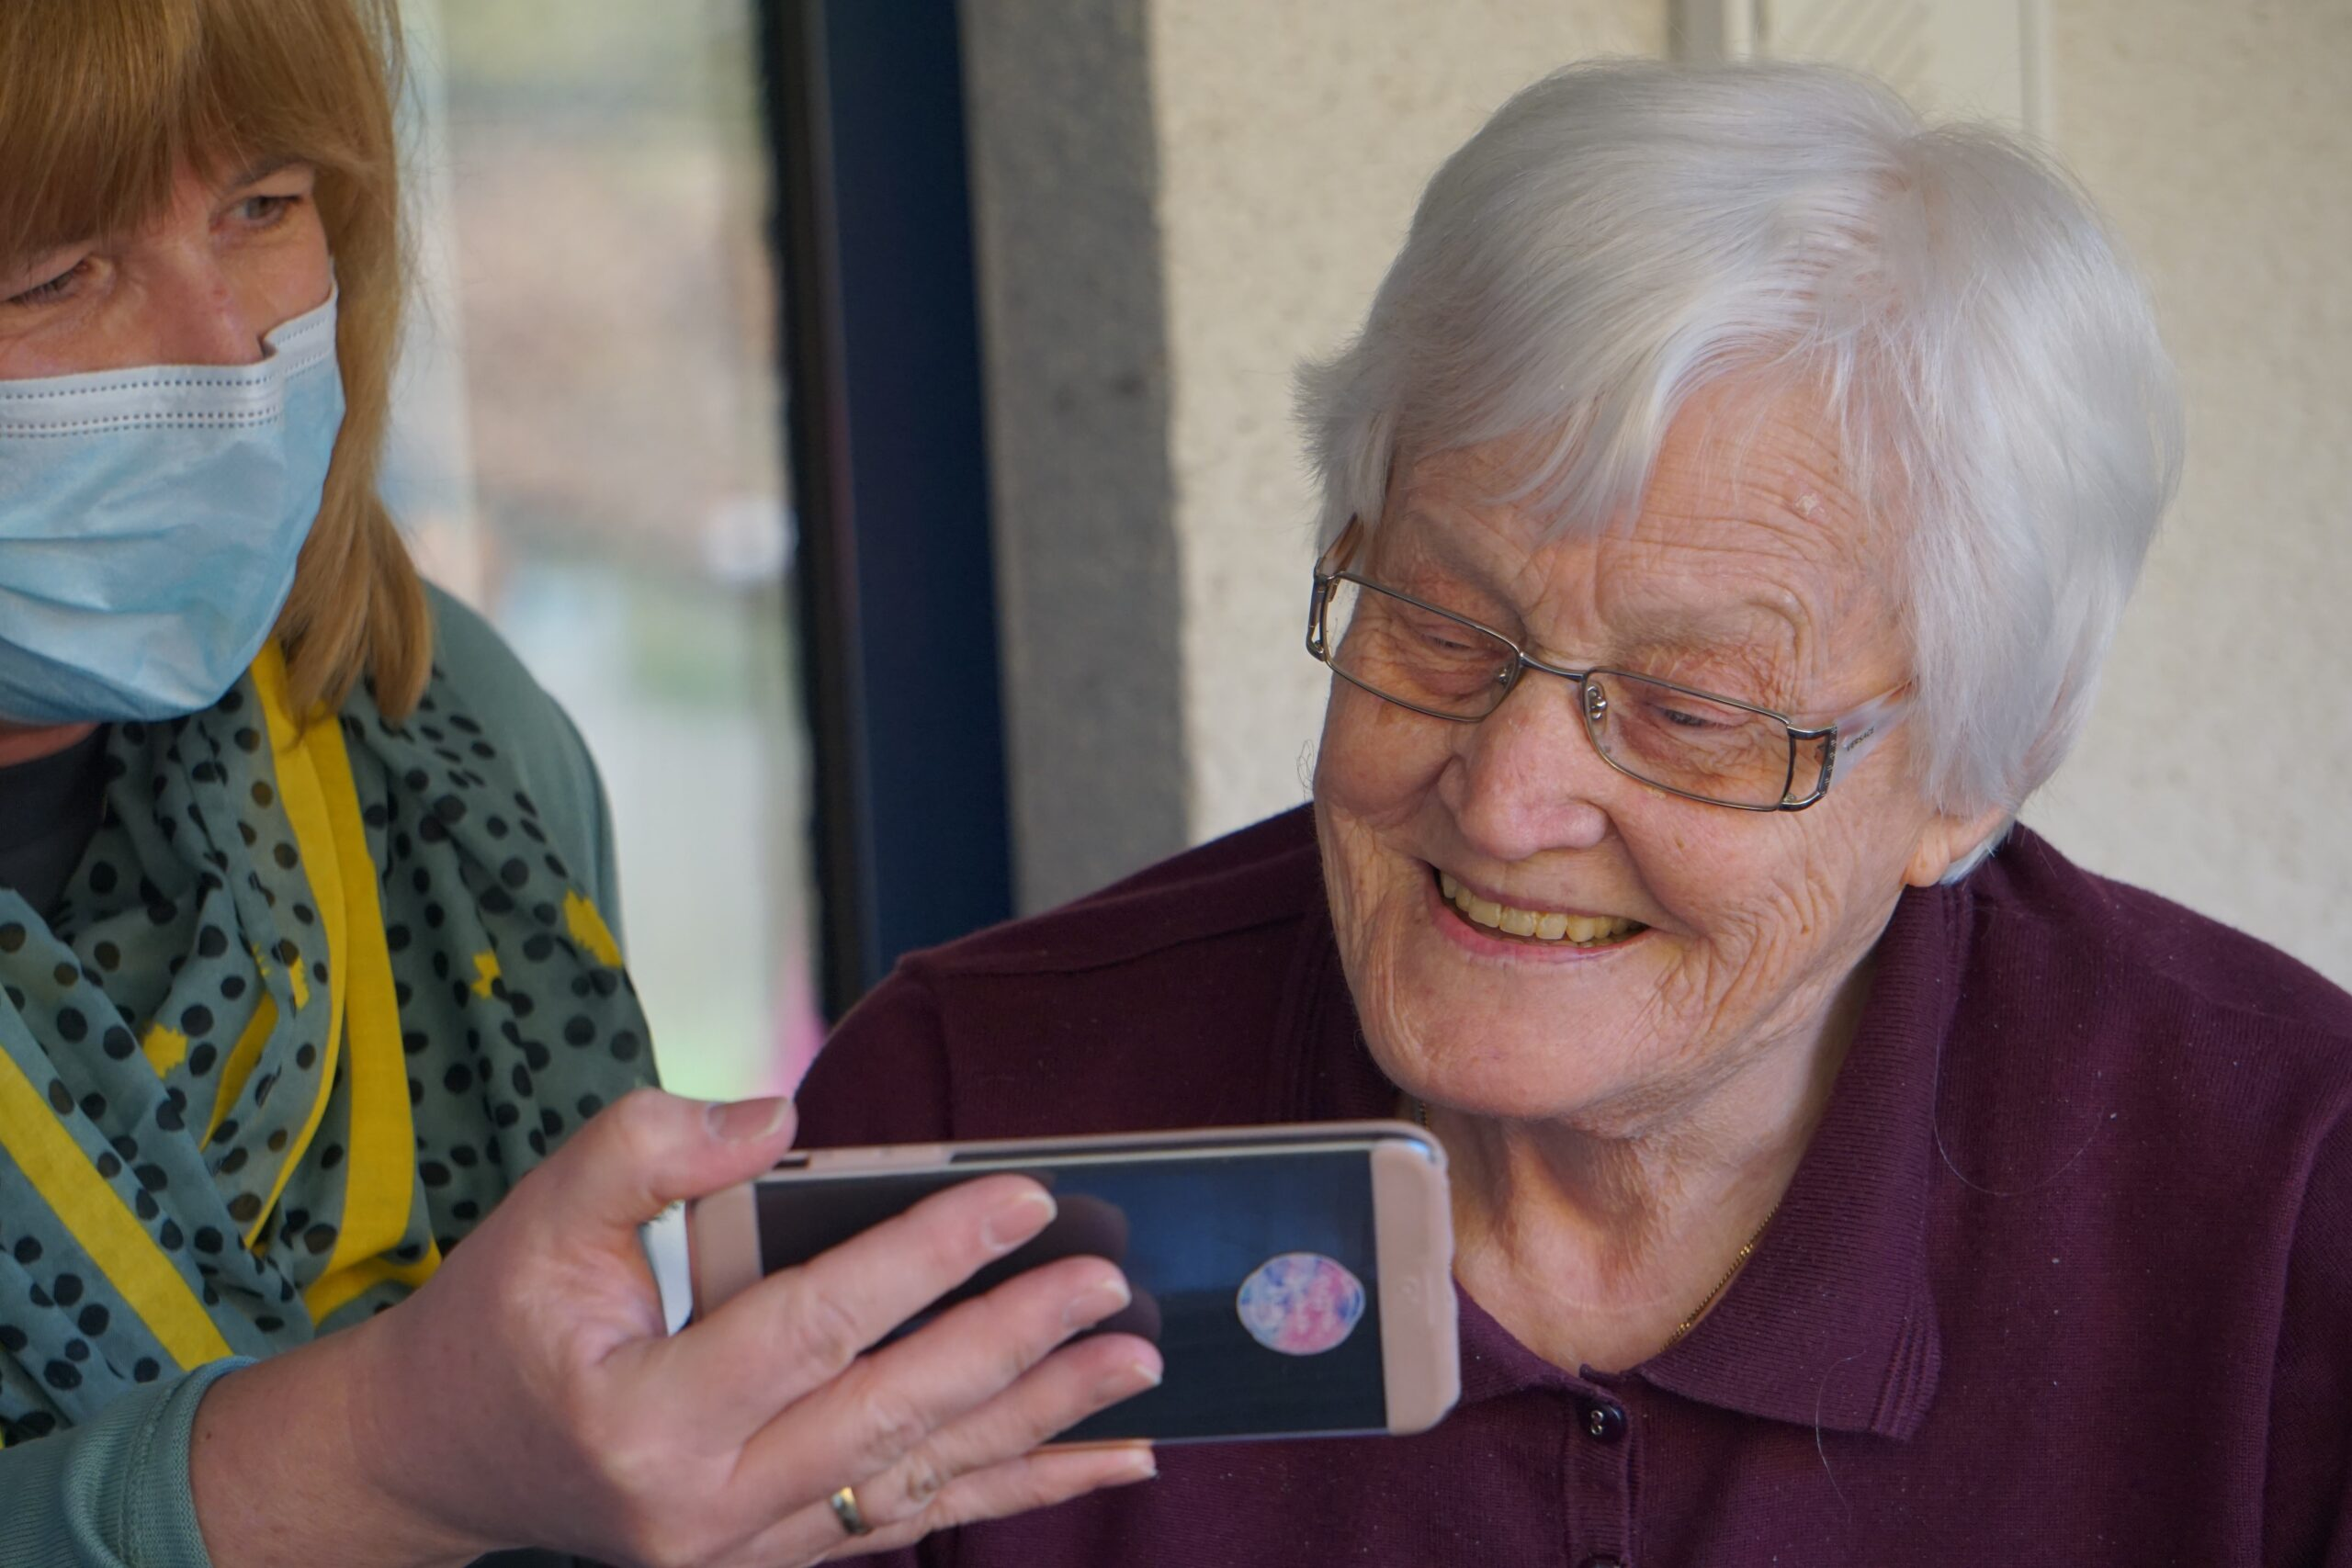 Staying Connected Important Now More Than Ever, Especially for Seniors